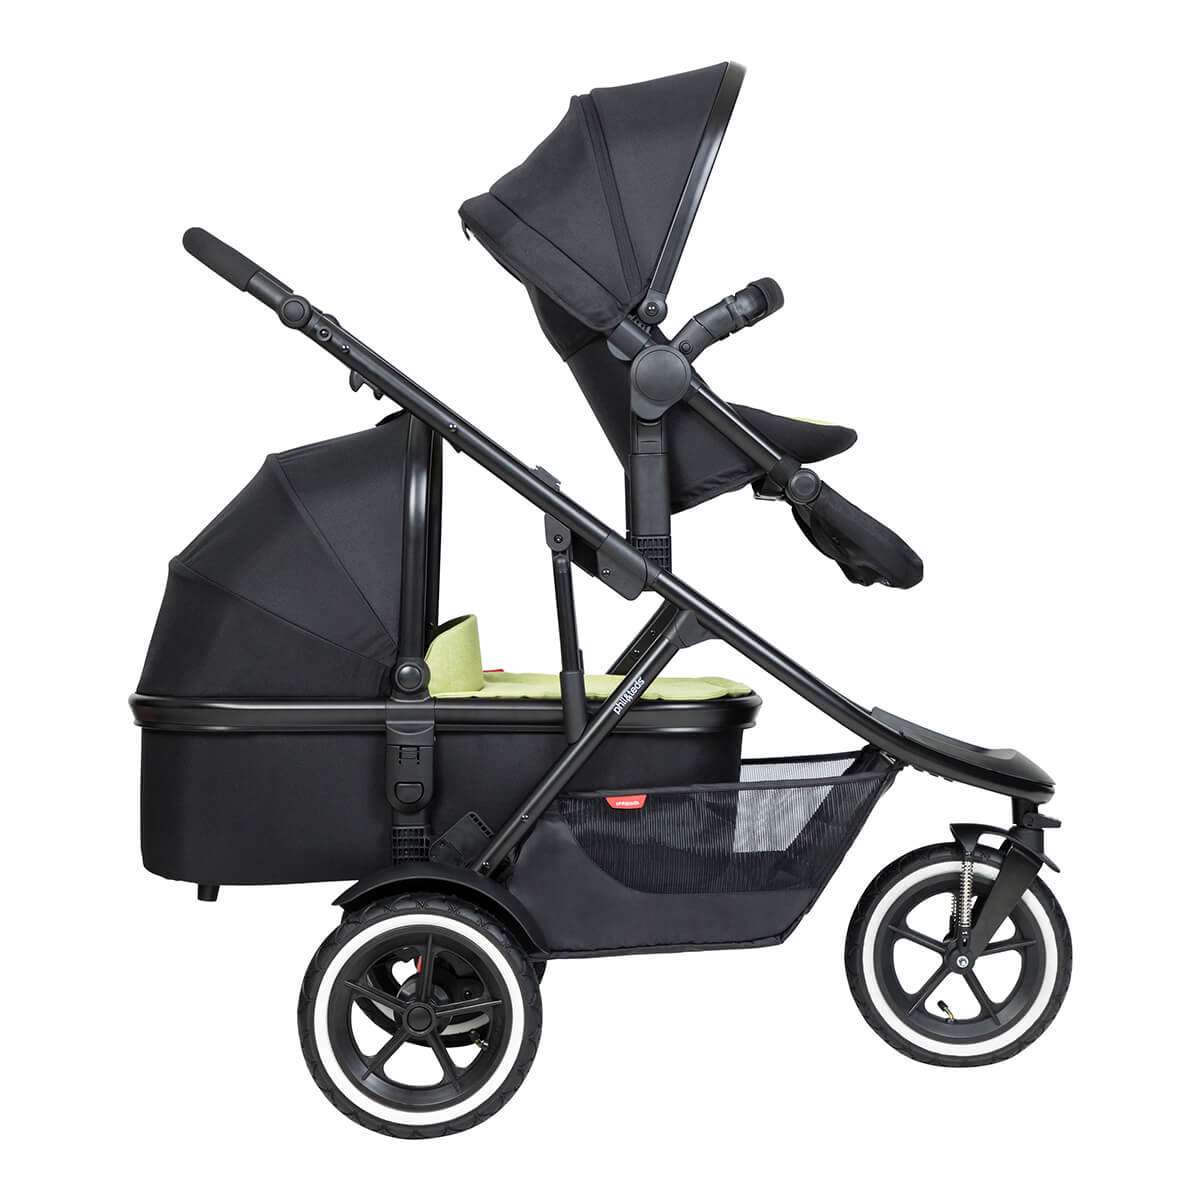 https://cdn.accentuate.io/4546157379689/19119322726505/philteds-sport-buggy-with-double-kit-extended-clip-and-snug-carrycot-side-view-v1625778188037.jpg?1200x1200